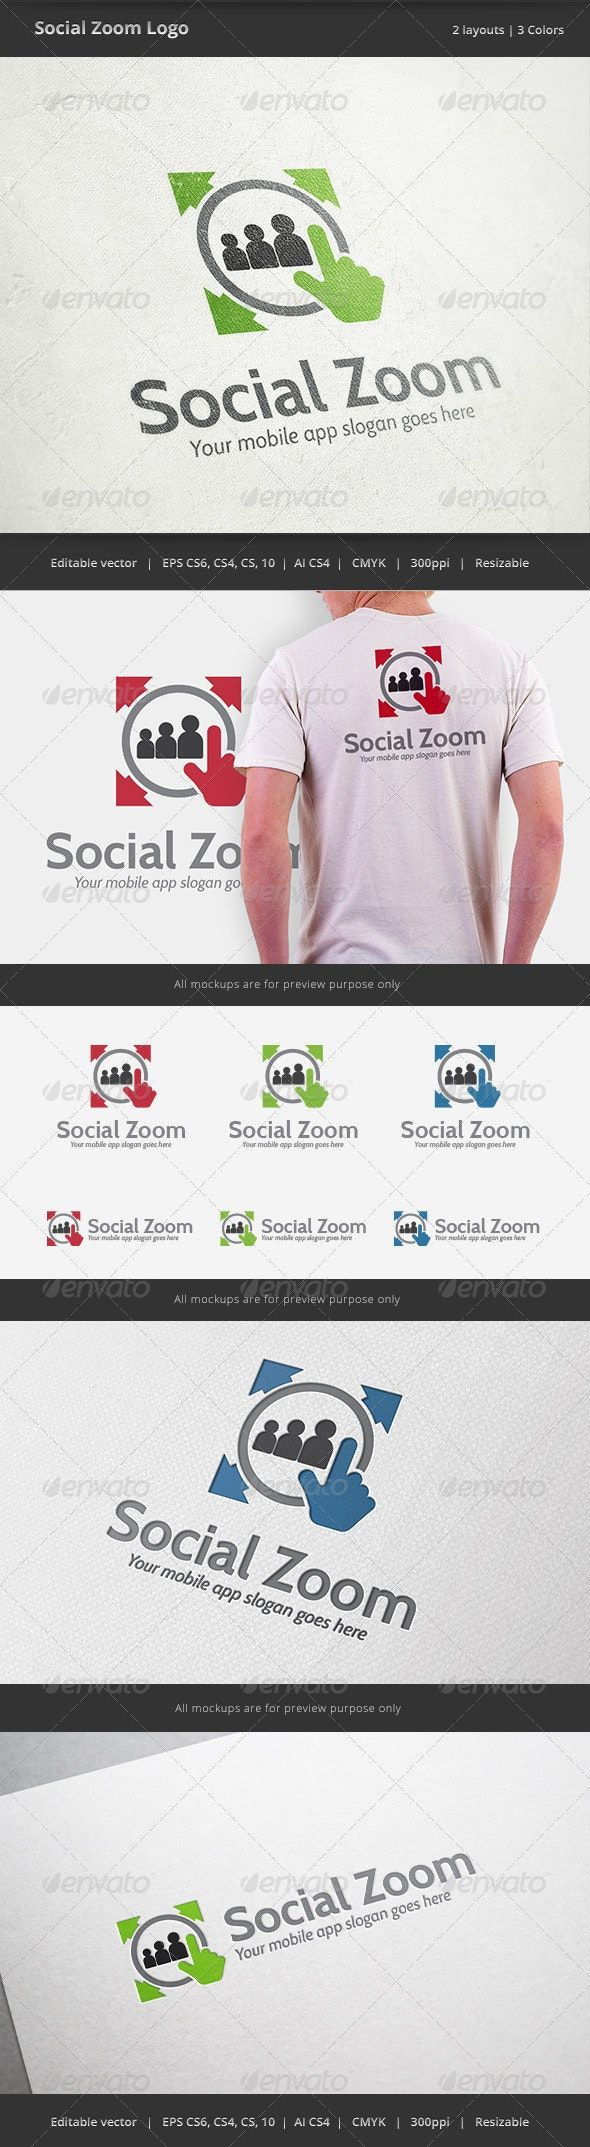 Soical Zoom Mobile Logo Abstract Logo Design Template